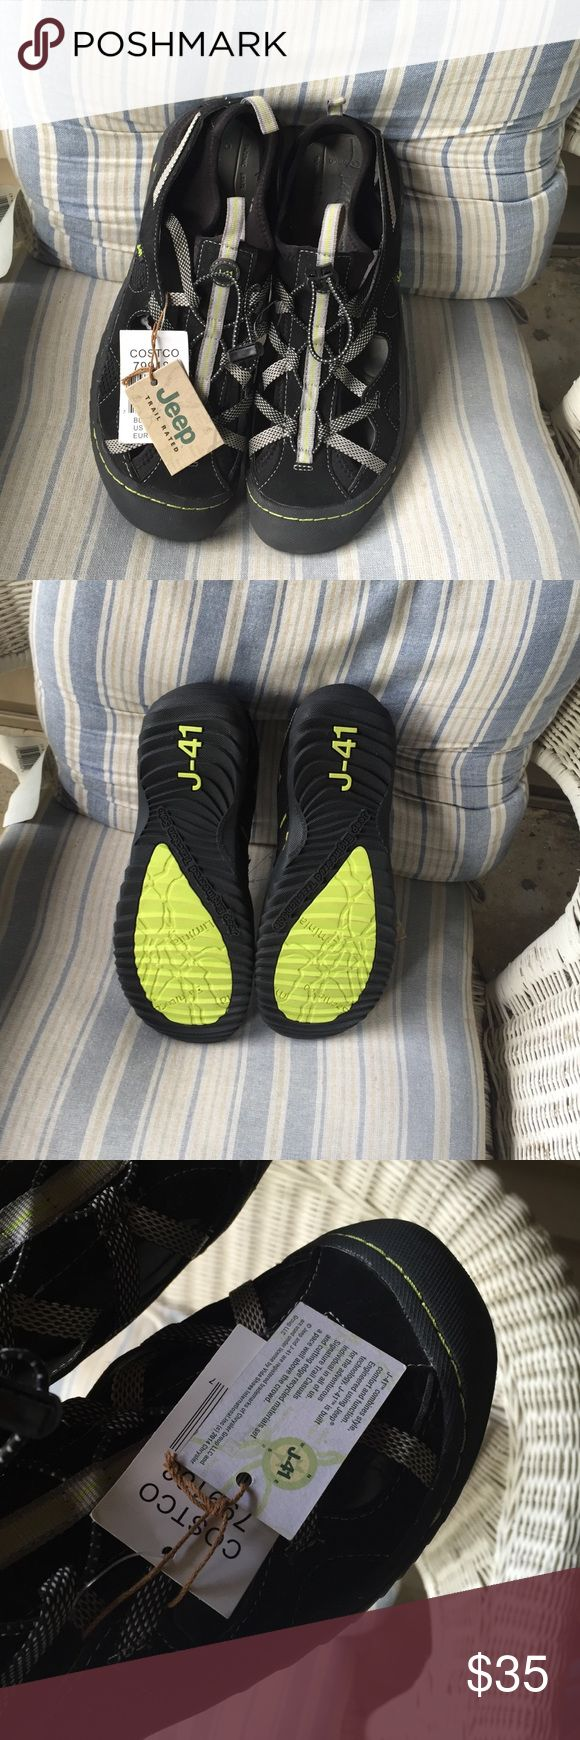 Brand new Jeep J-41 shoes Brand new with tags Jeep Shoes Athletic Shoes